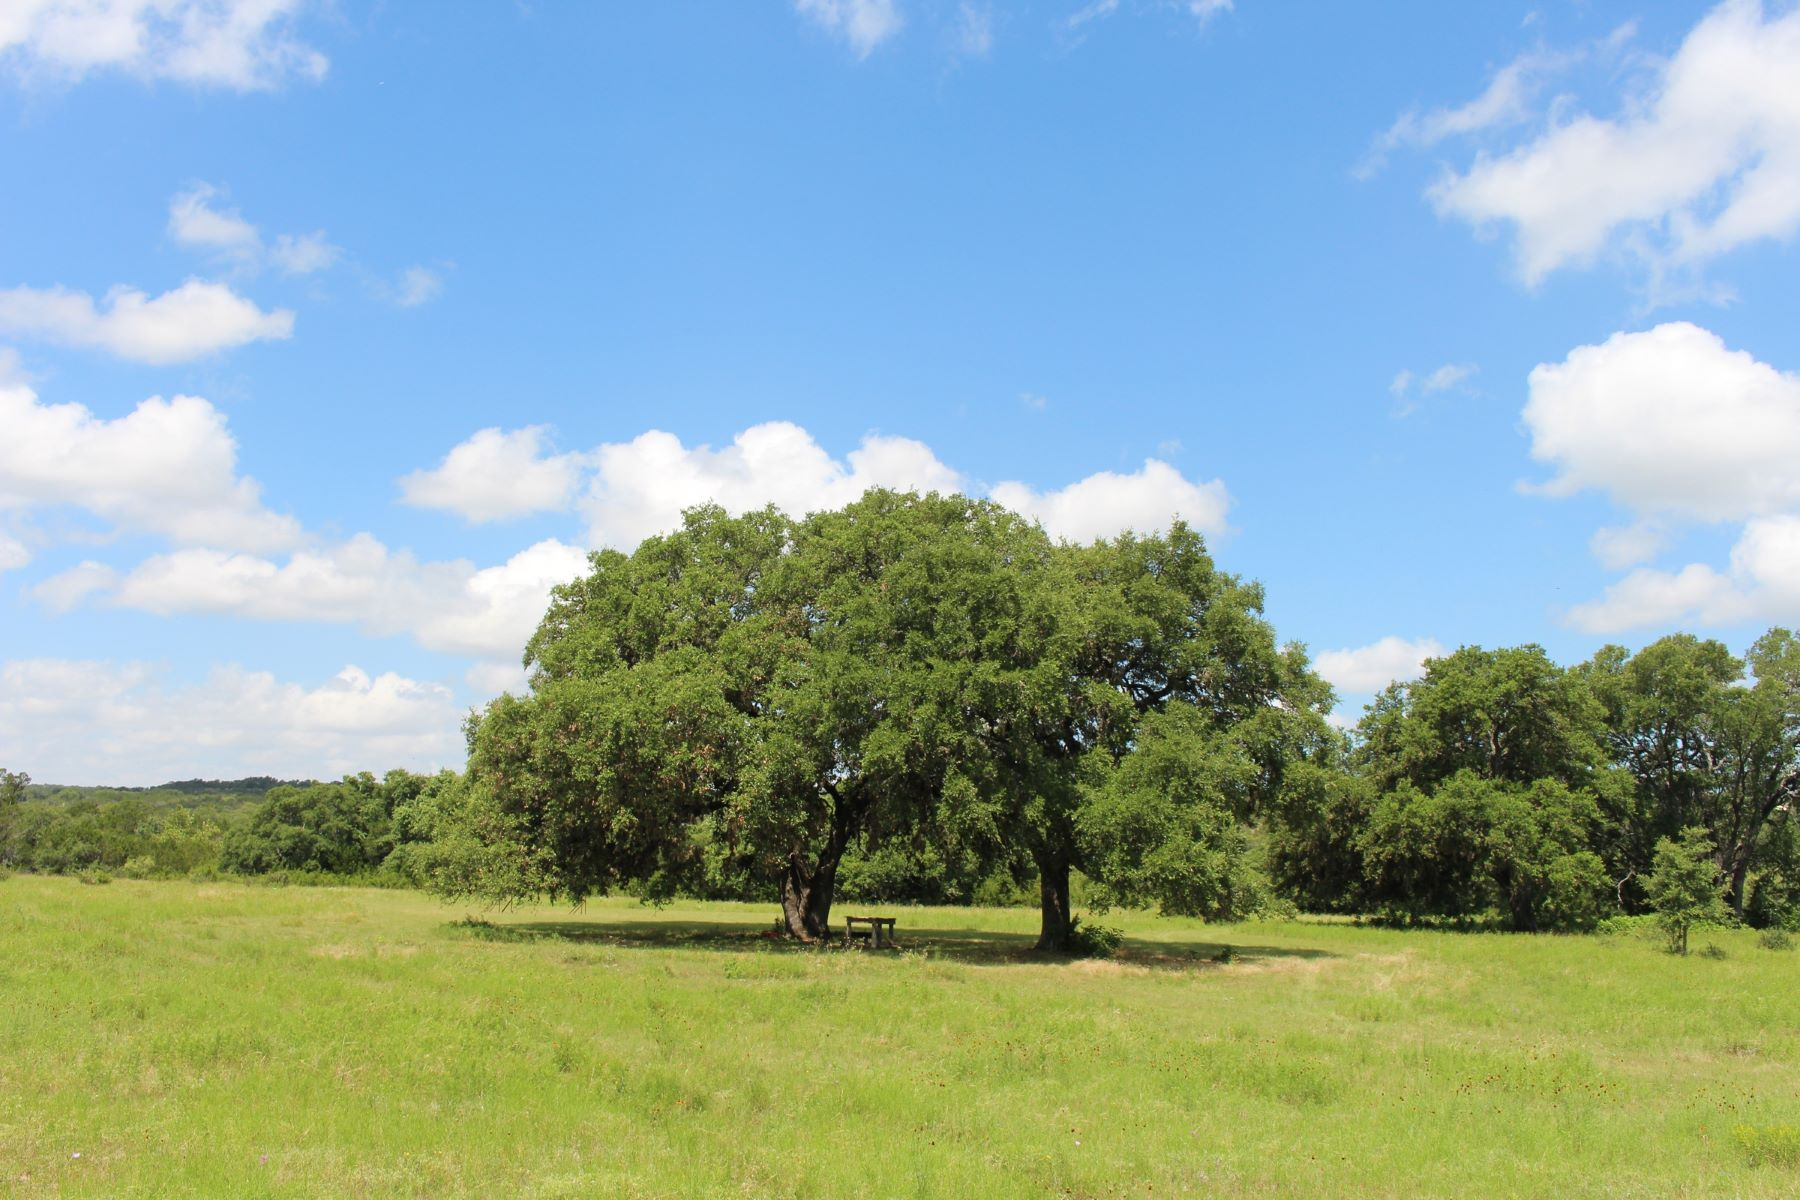 Farm / Ranch / Plantation for Sale at 2,000+/- Acres in Blanco County - Rafter 7 Ranch 2,000+/- Acres / Blanco County Johnson City, Texas 78620 United States